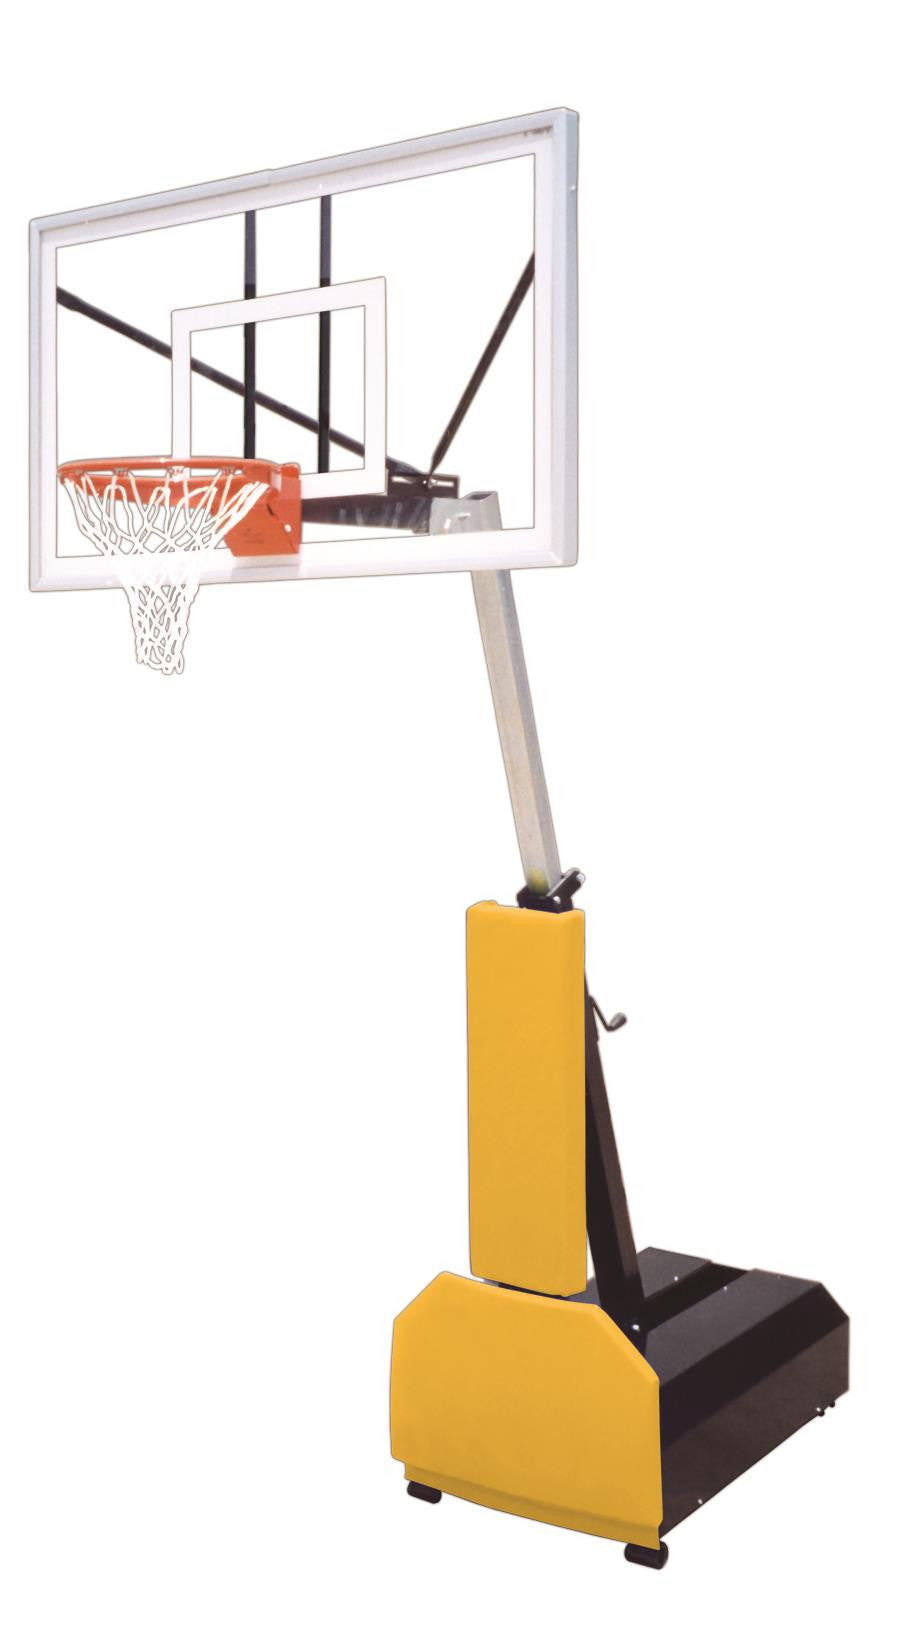 First Team Fury Nitro Adjustable Portable Basketball Hoop 60 inch Tempered Glass